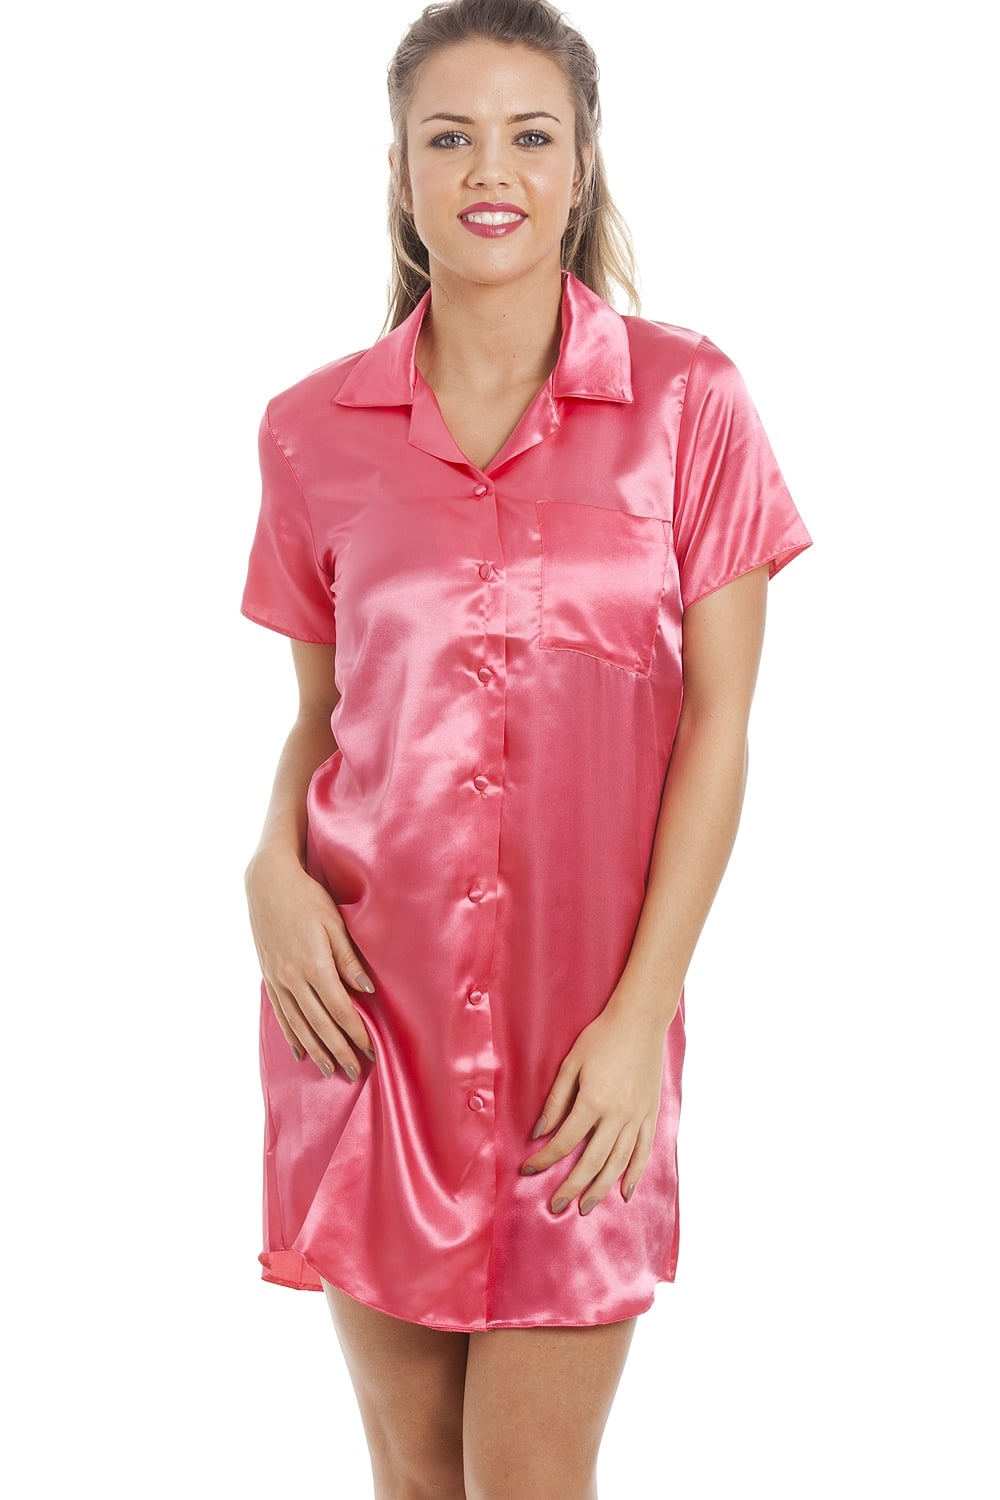 Find great deals on eBay for silk nightshirt. Shop with confidence.